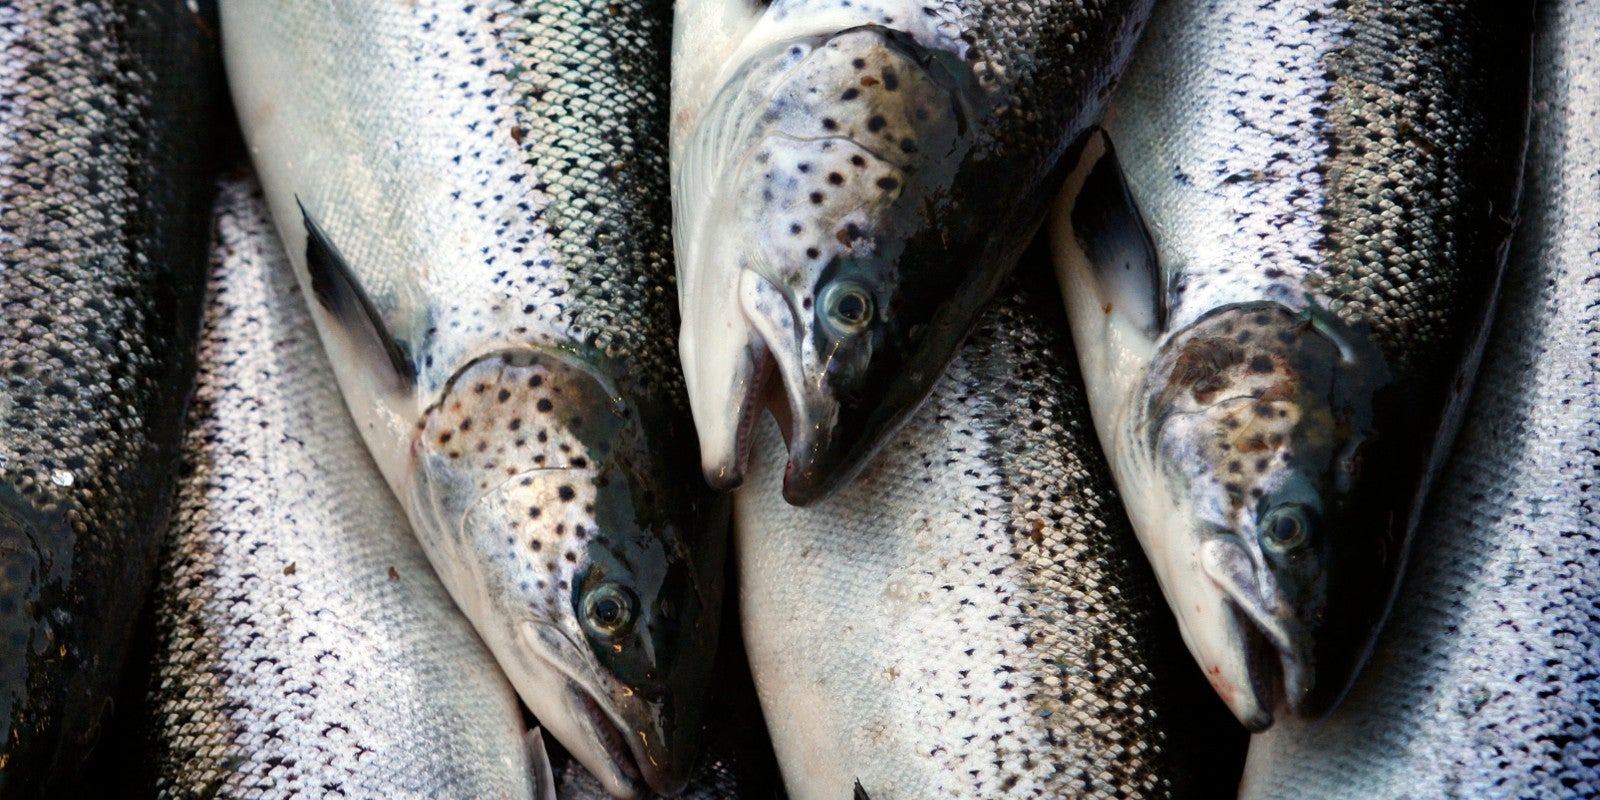 US FDA Approves Salmon The First GM Animal Safe To Eat, Doesn't Require Labels